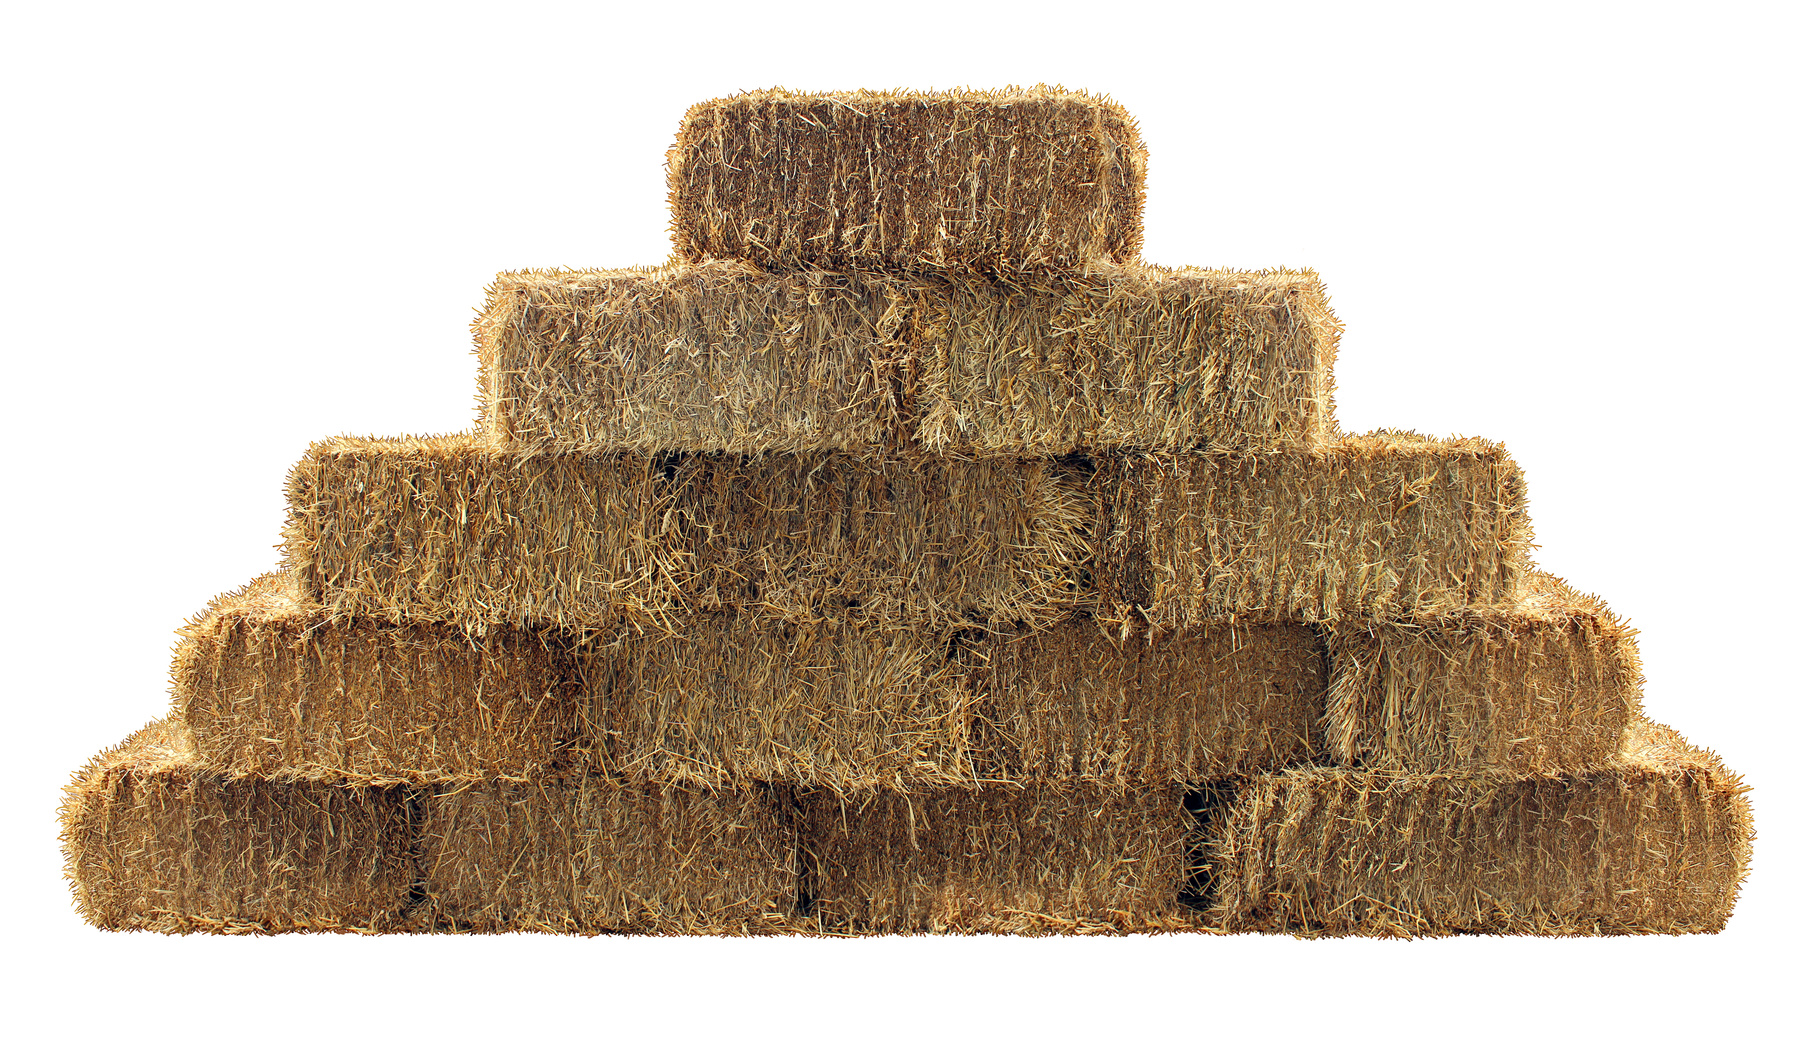 Hay is a vital crop for successfully raising livestock, and controlling the moisture content of the hay is vital to producing top-quality hay.